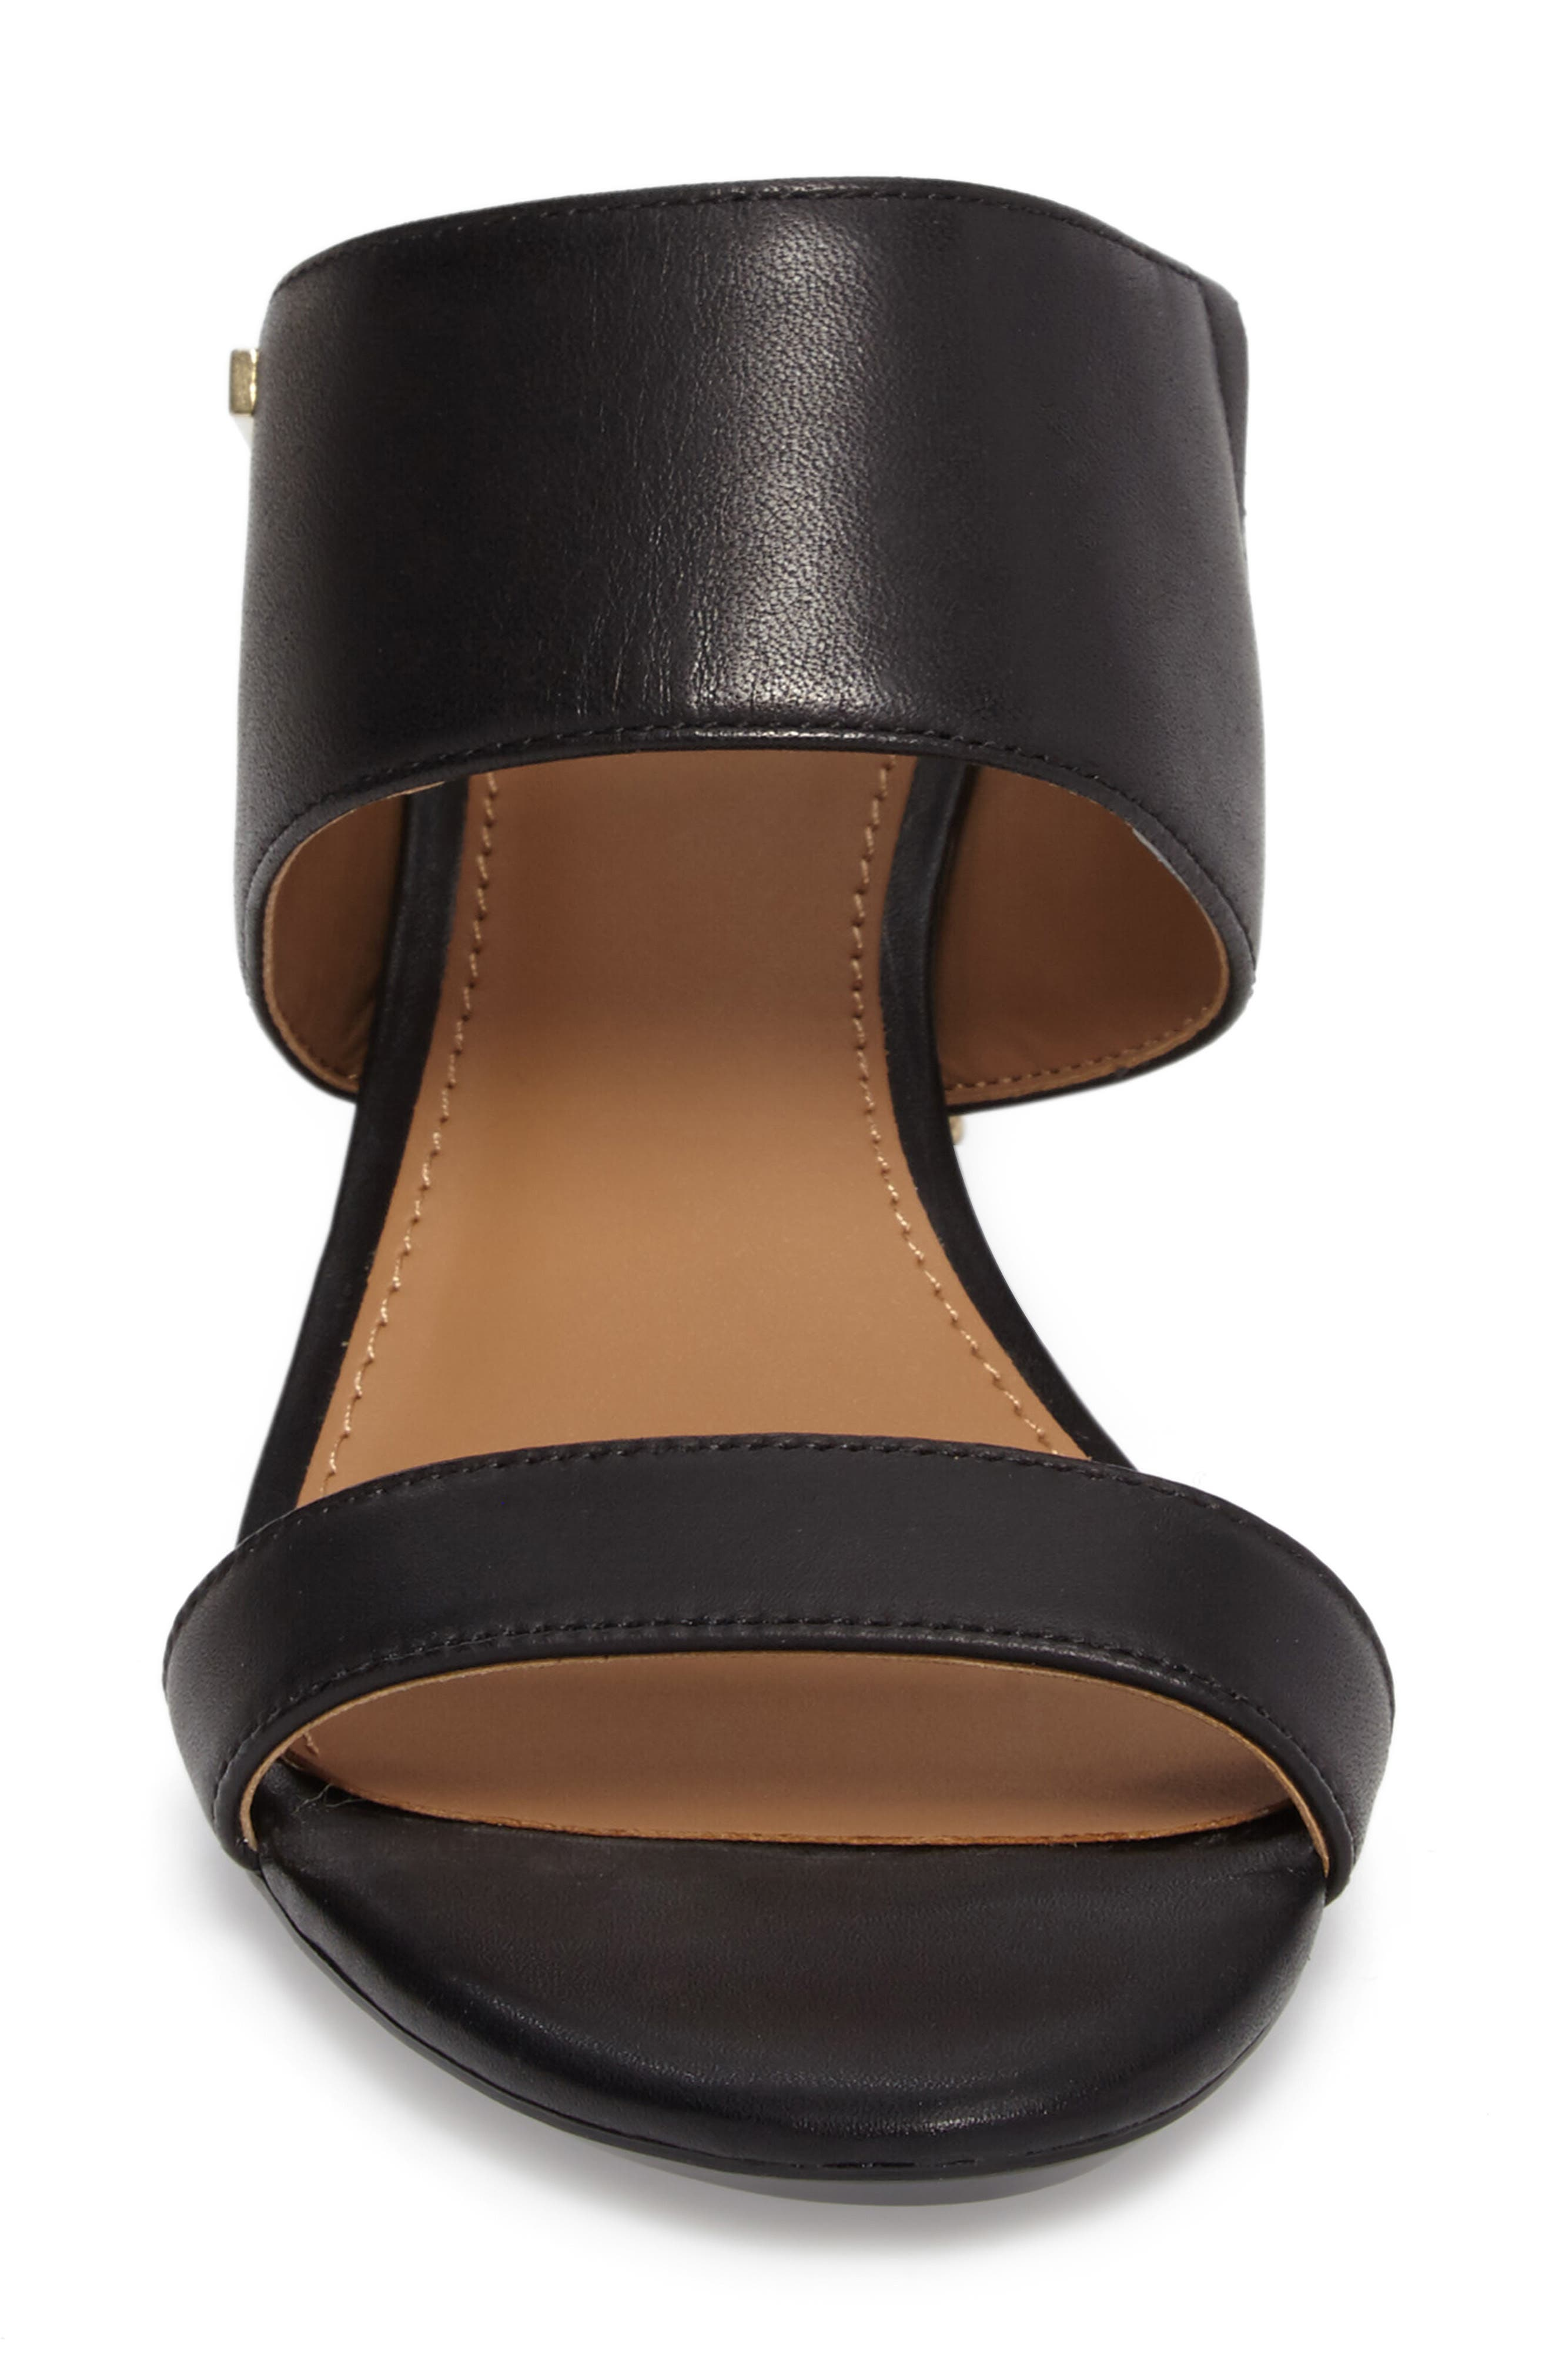 Phyllis Studded Wedge Sandal,                             Alternate thumbnail 4, color,                             Black Leather